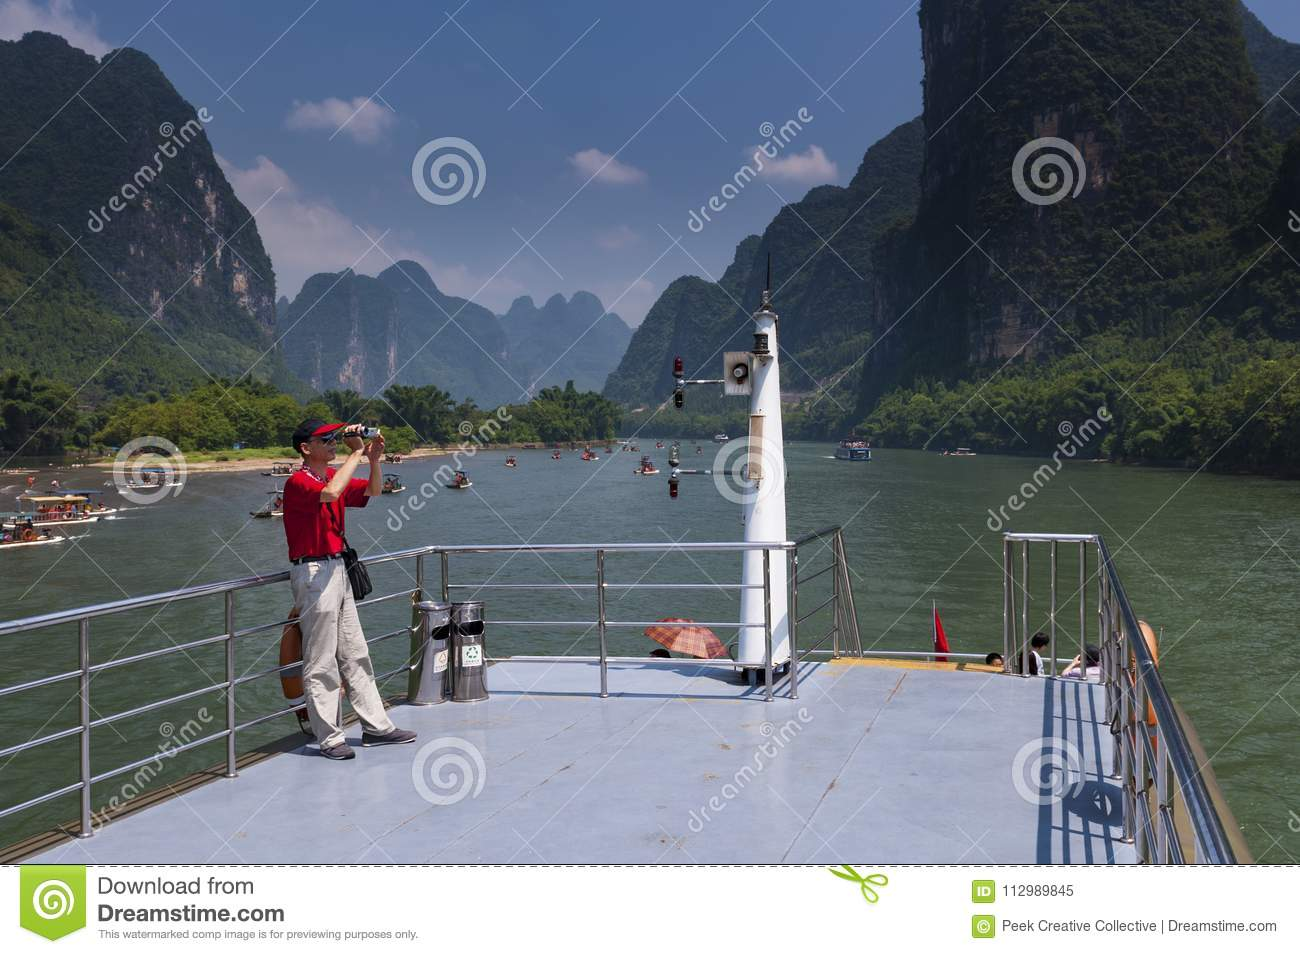 Chinese man in a boat cruising in the Li River and photographing the the tall limestone mountains near Yangshuo in China